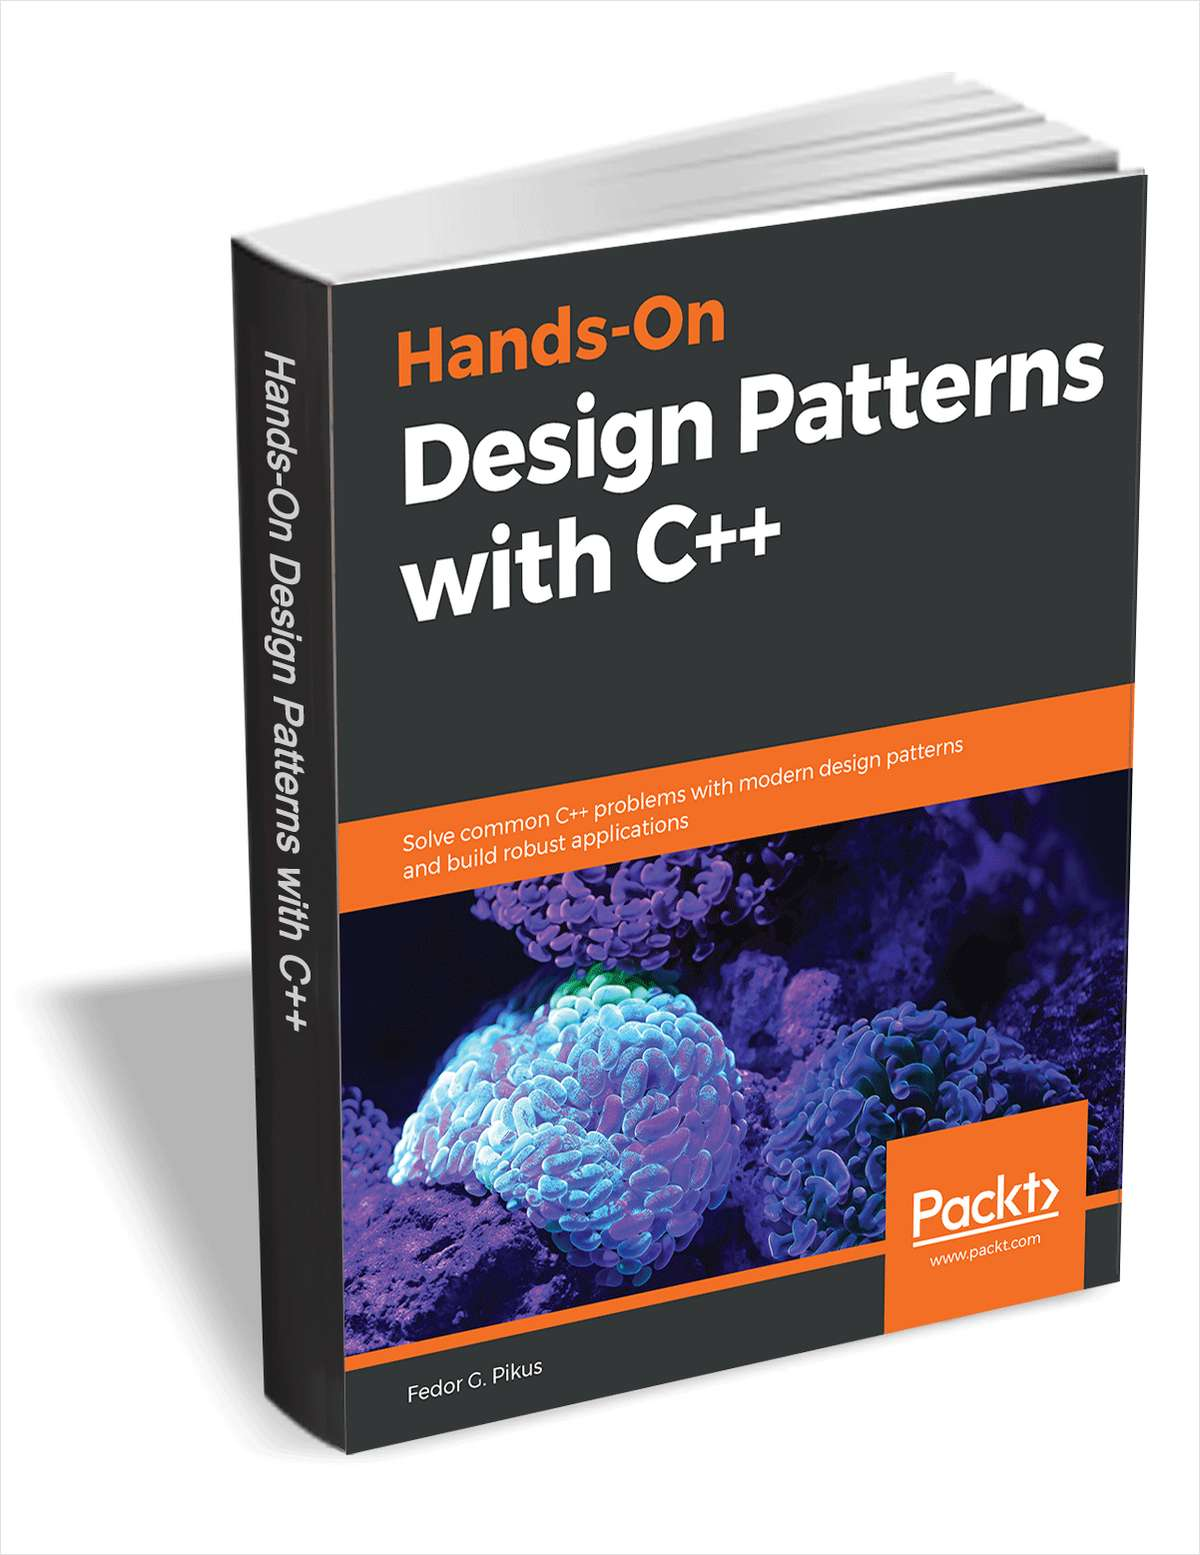 Design Patterns with C++ - Free Sample Chapters